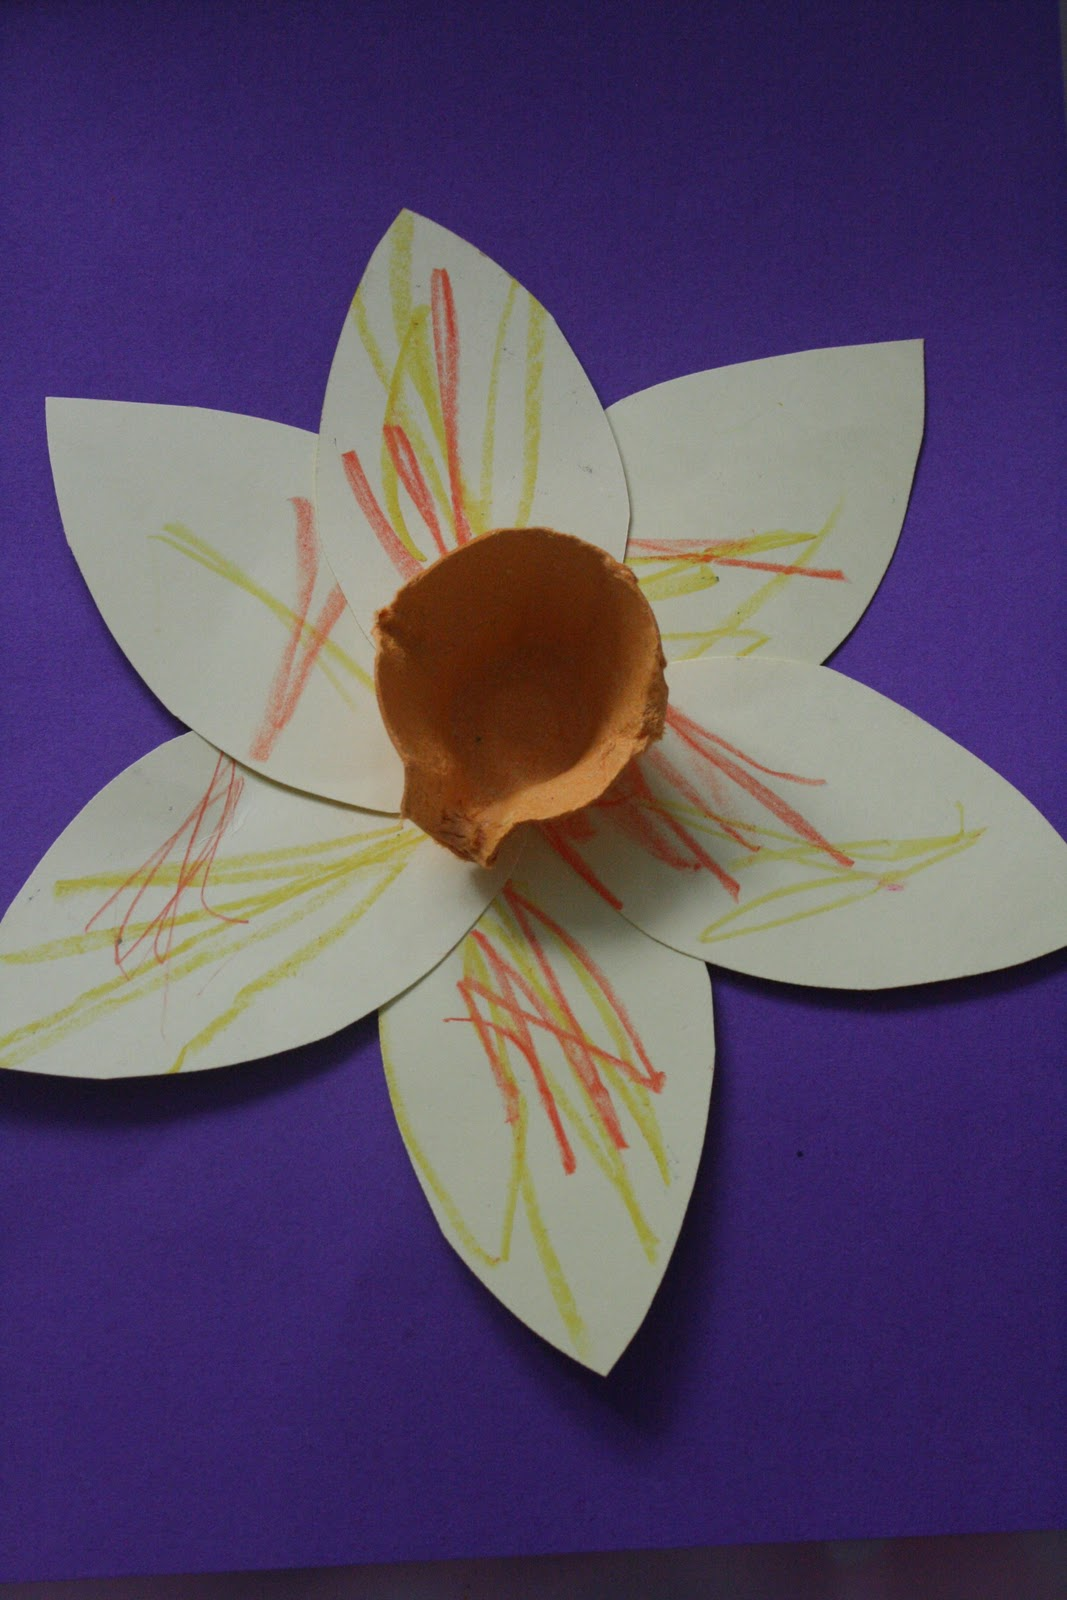 Daffodils for st davids day the imagination tree daffodils for st davids day jeuxipadfo Image collections